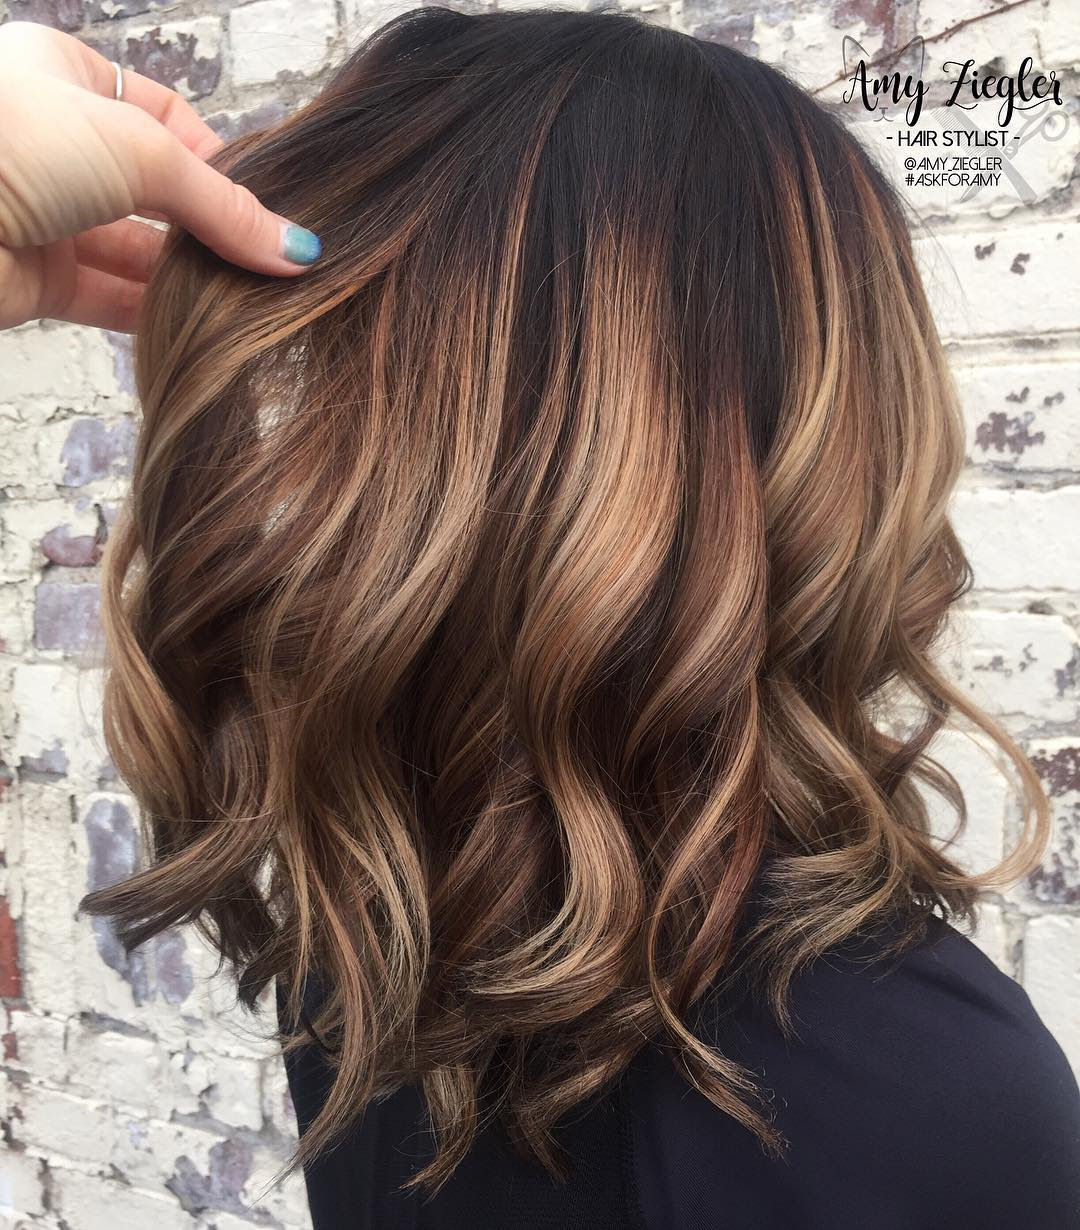 10 Trendy Brown Balayage Hairstyles for MediumLength Hair 2019